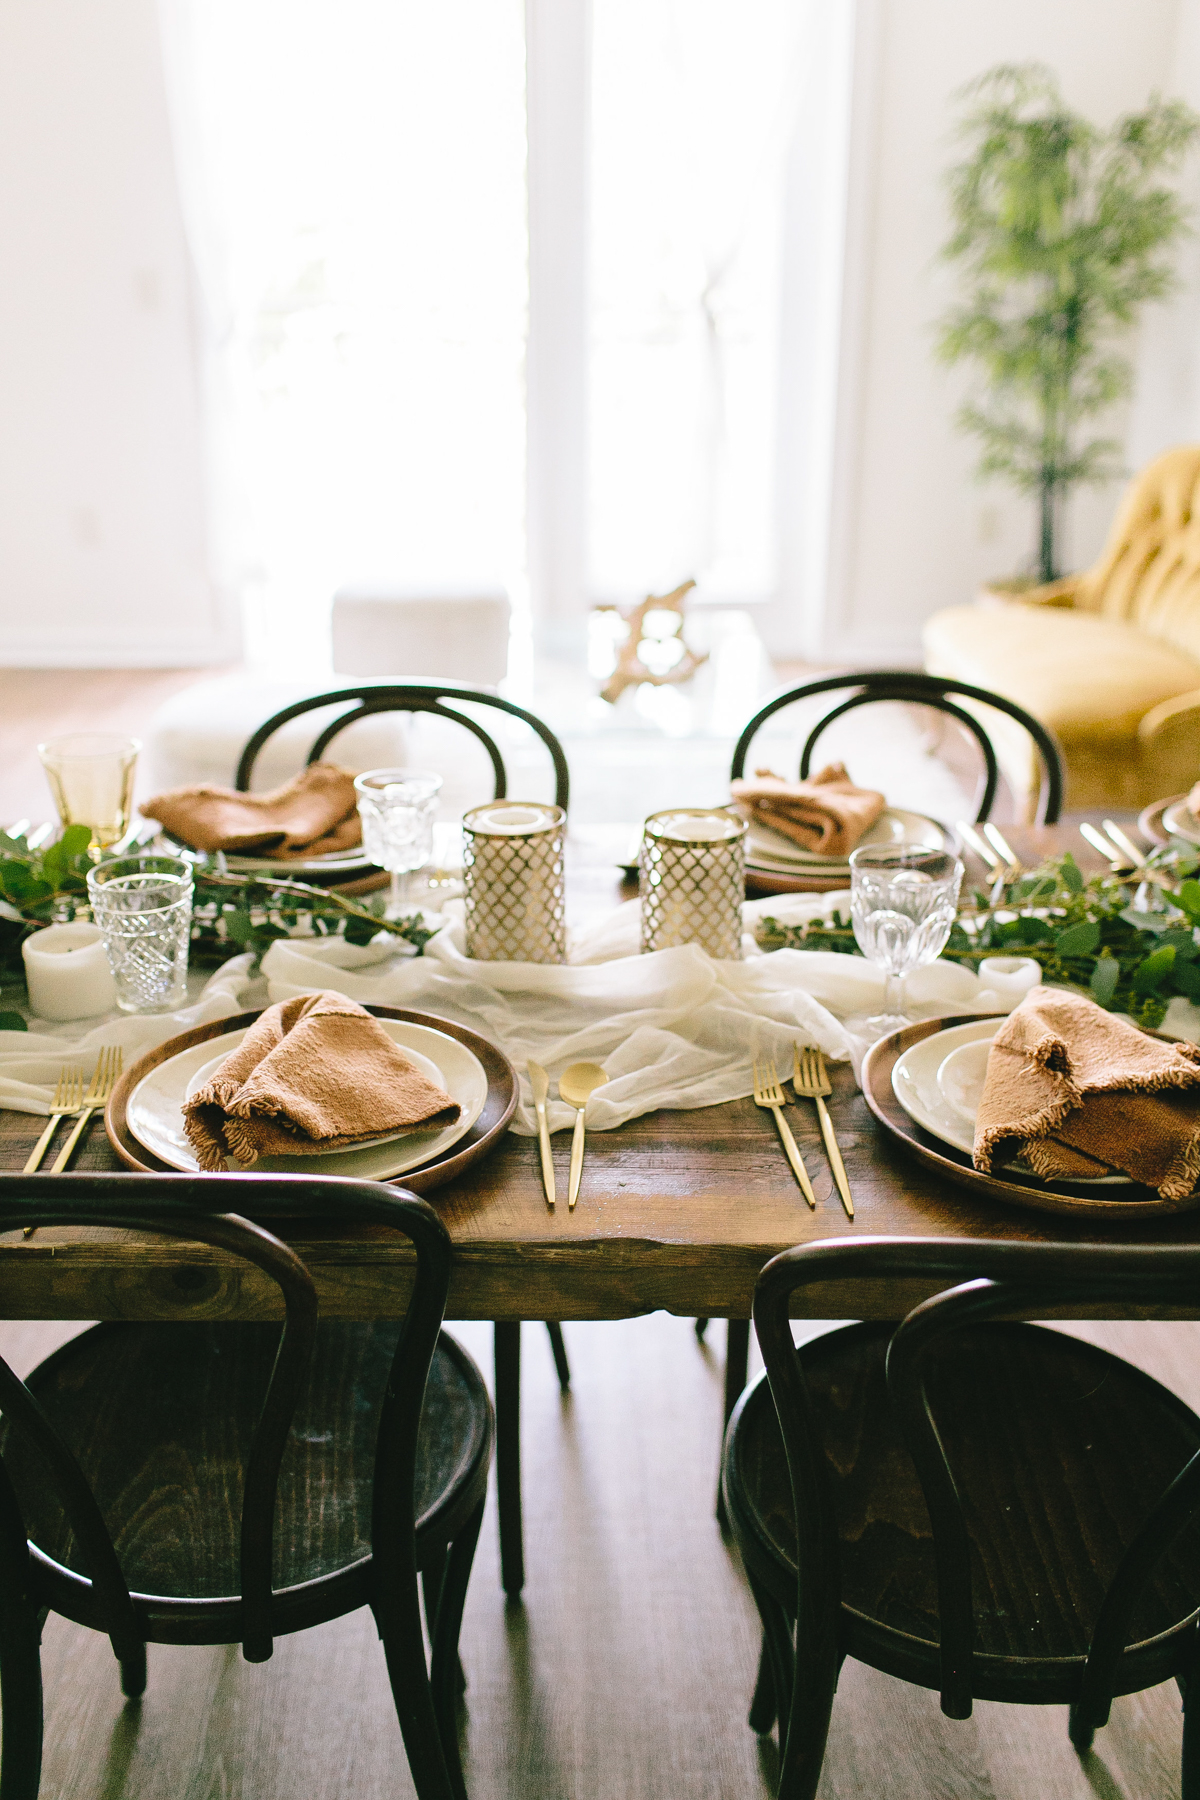 livvyland-blog-olivia-watson-zilkr-condo-loot-vintage-friendsgiving-tablescape-table-setup-idea-8